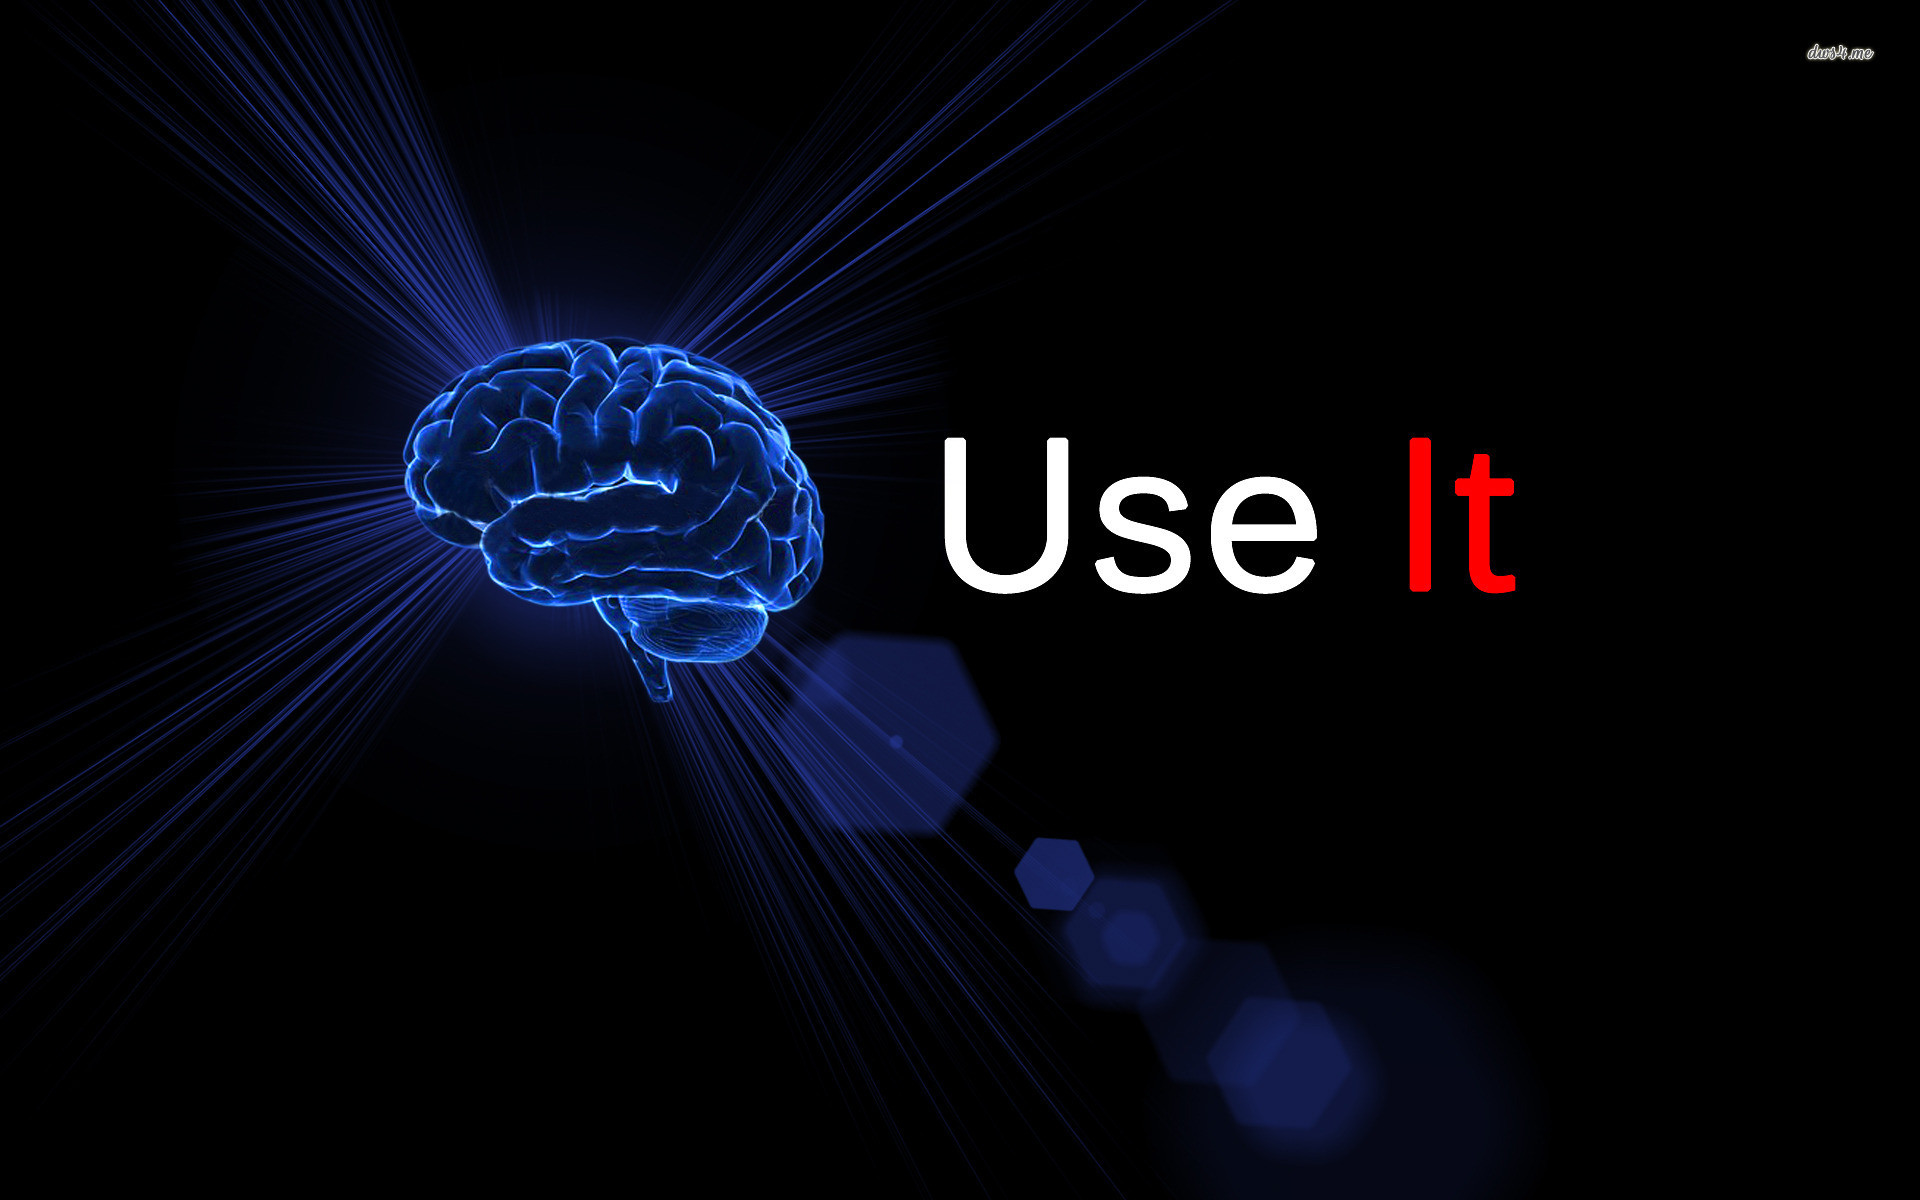 Use Your Brain wallpapers HD free – 468256